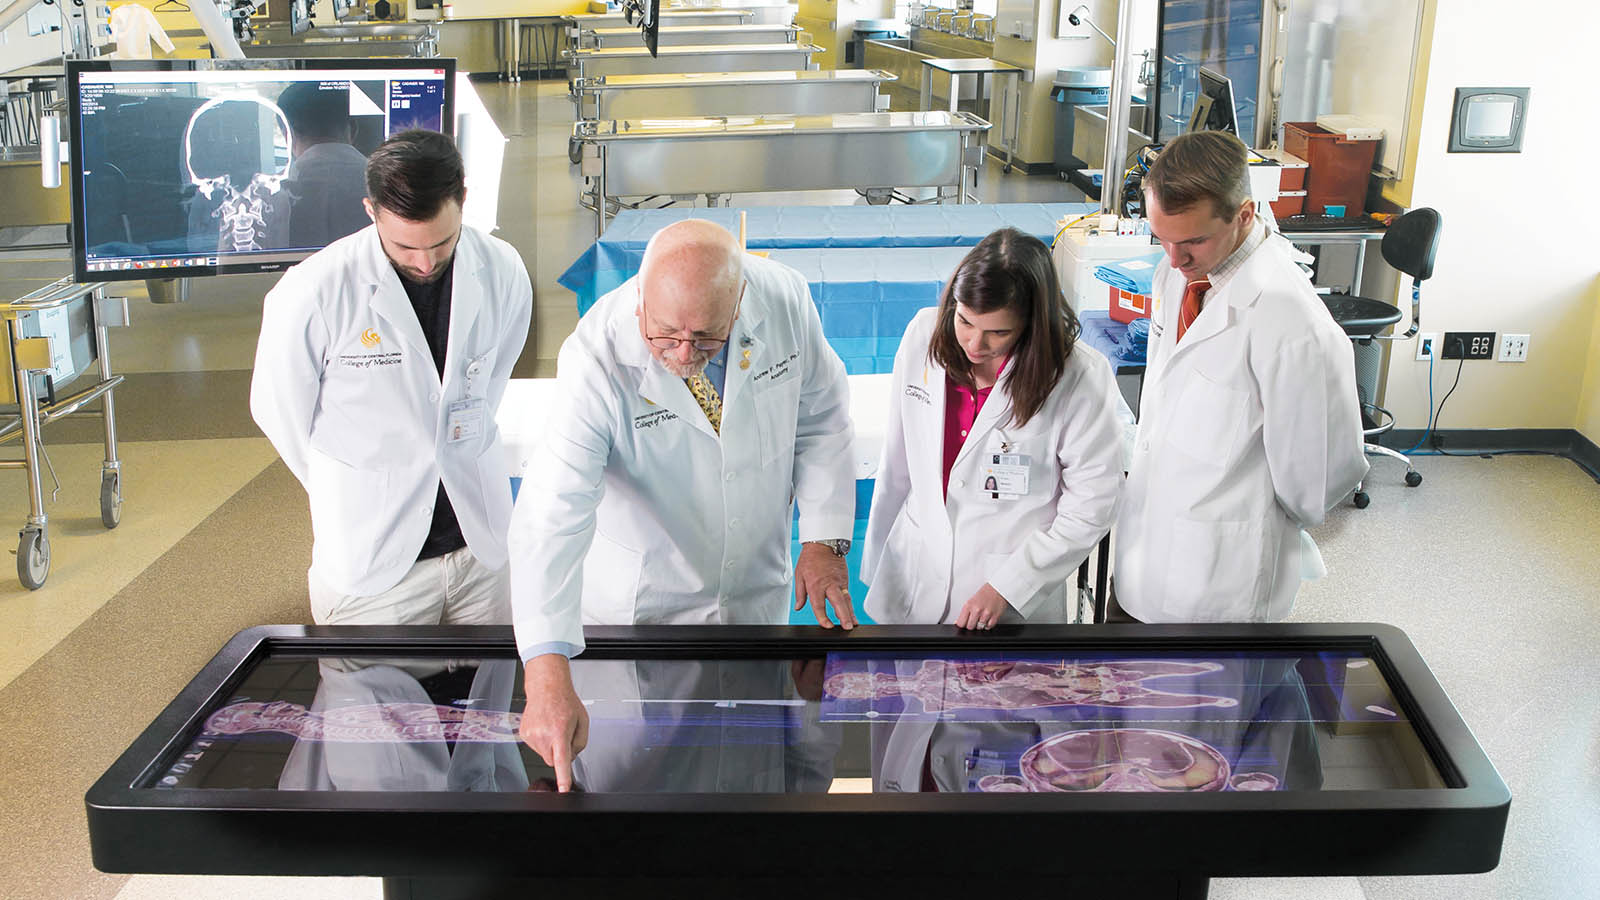 The Ultimate College of Medicine Anatomy Lab